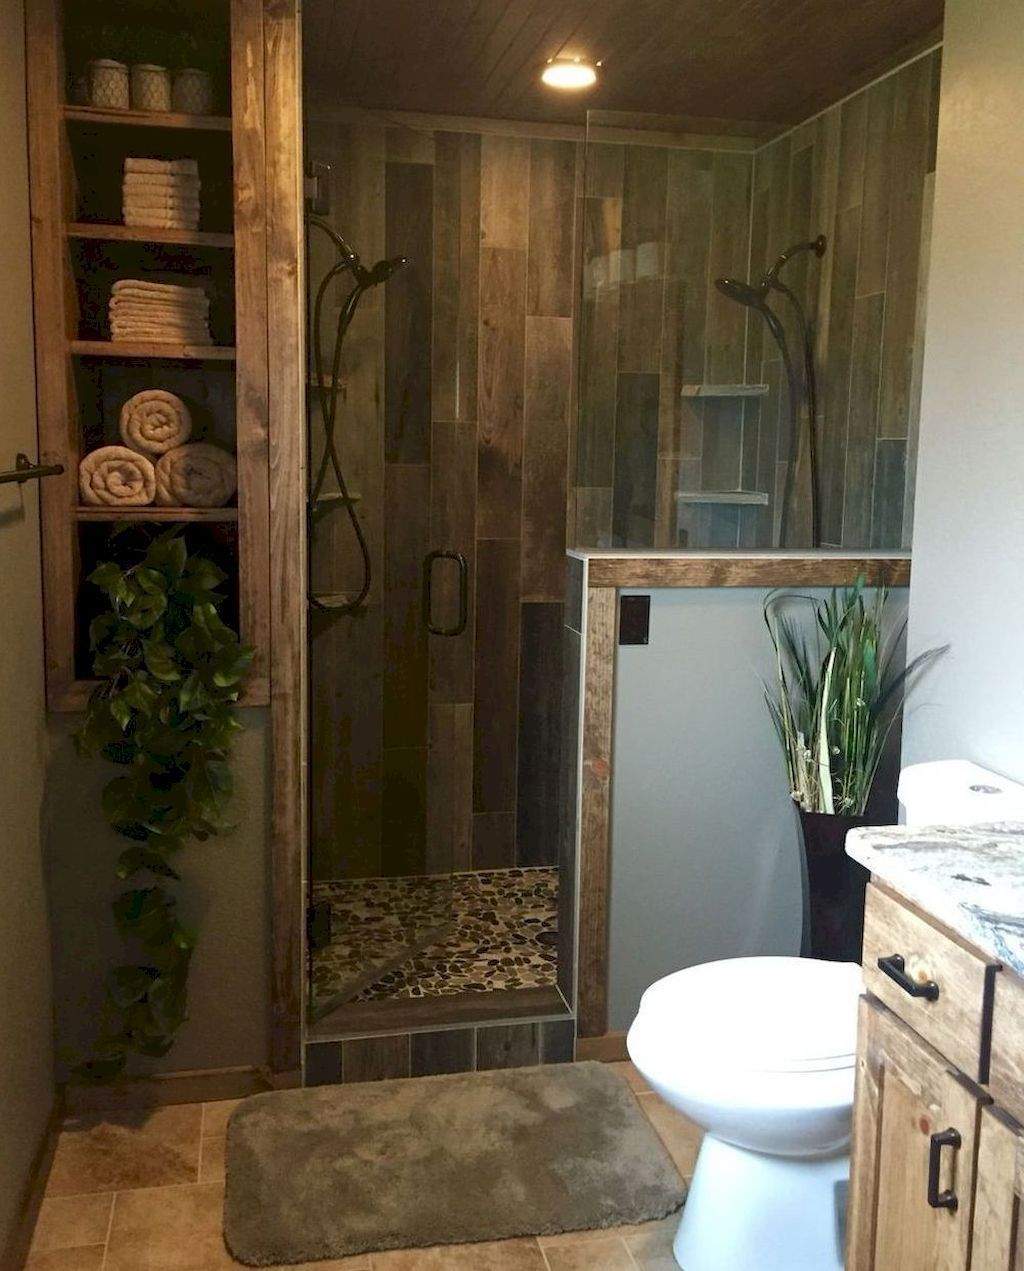 Design Tricks To Make A Small Toilet Higher Bathroom Better Design Small In 2020 Bathroom Remodel Master Bathroom Remodel Designs Modern Farmhouse Bathroom